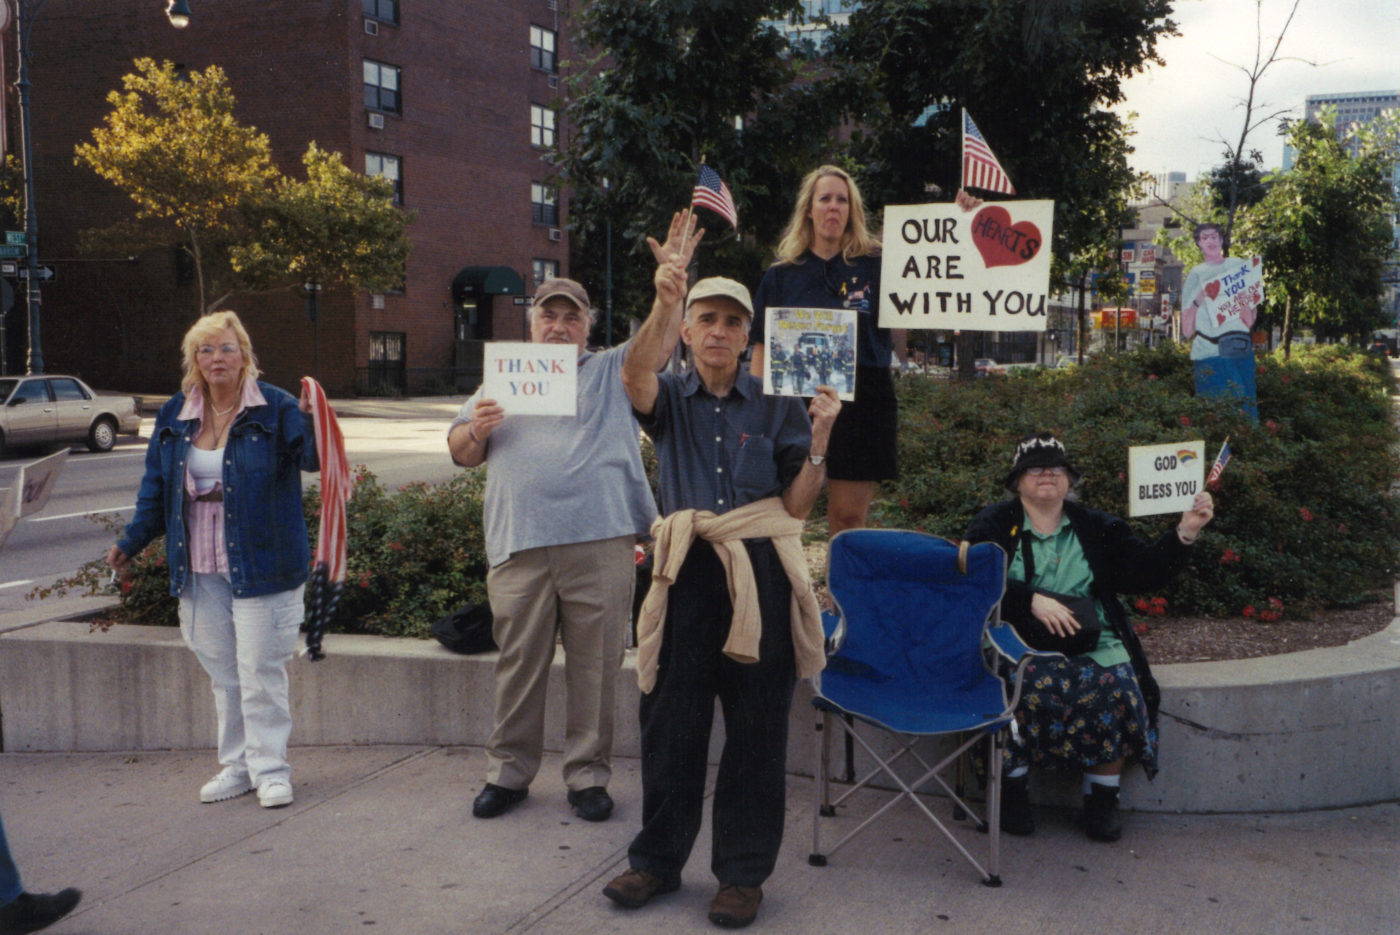 Lenore Mills- Thank You Signs, September 11, 2004